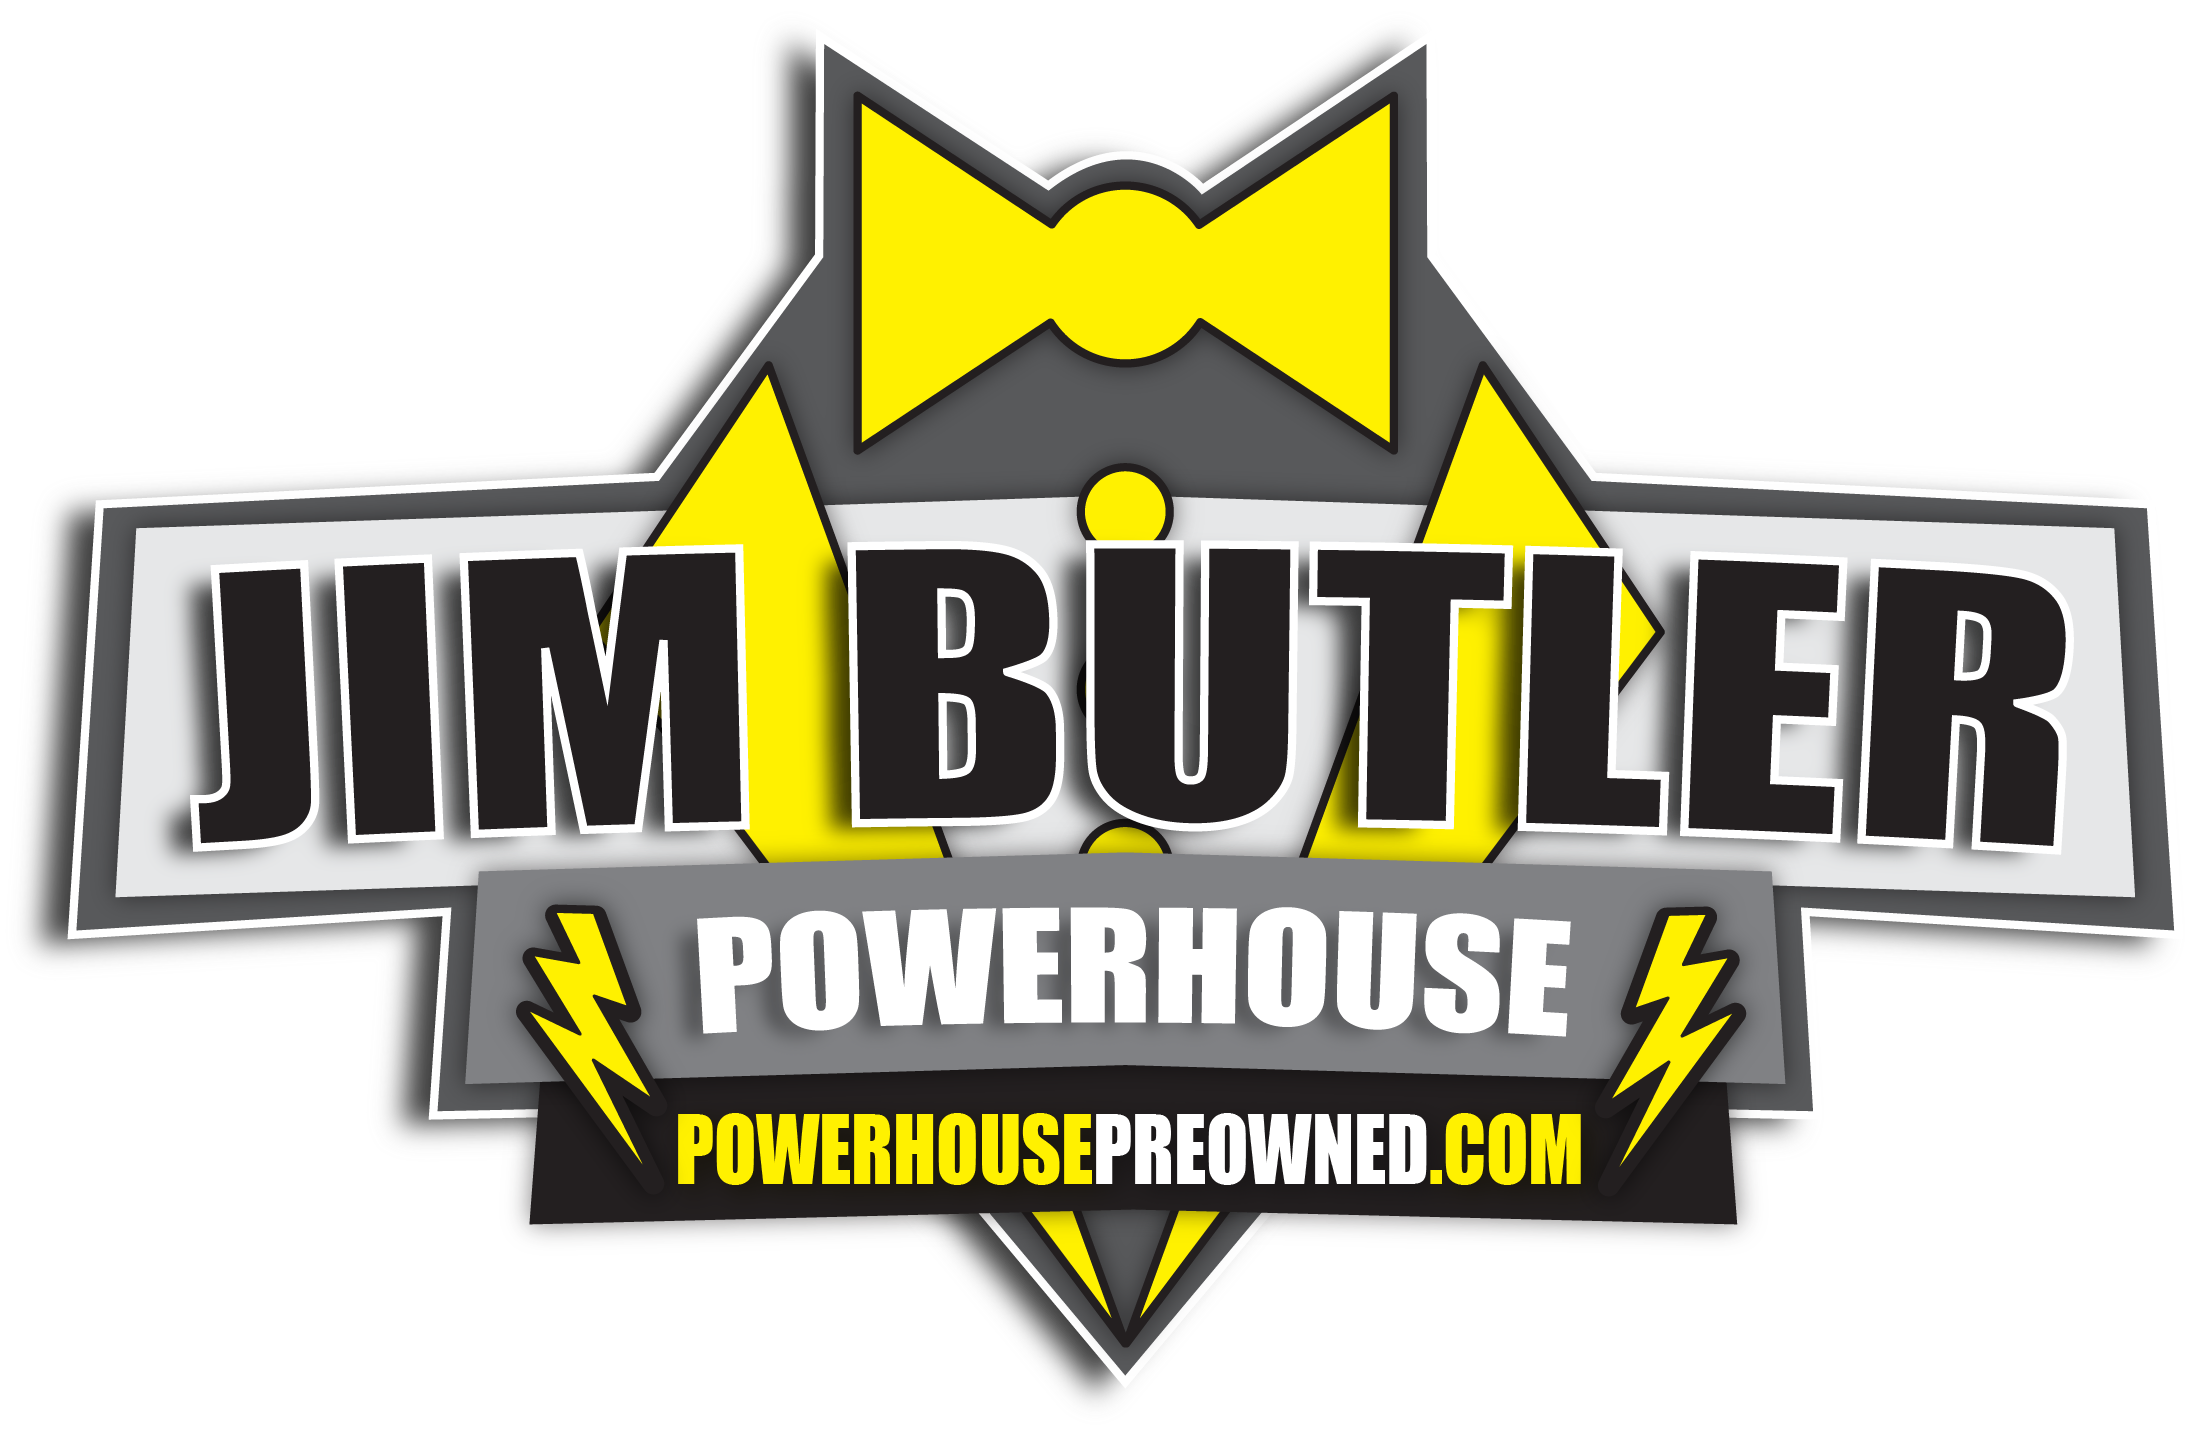 Jim Butler Powerhouse Pre-Owned.png